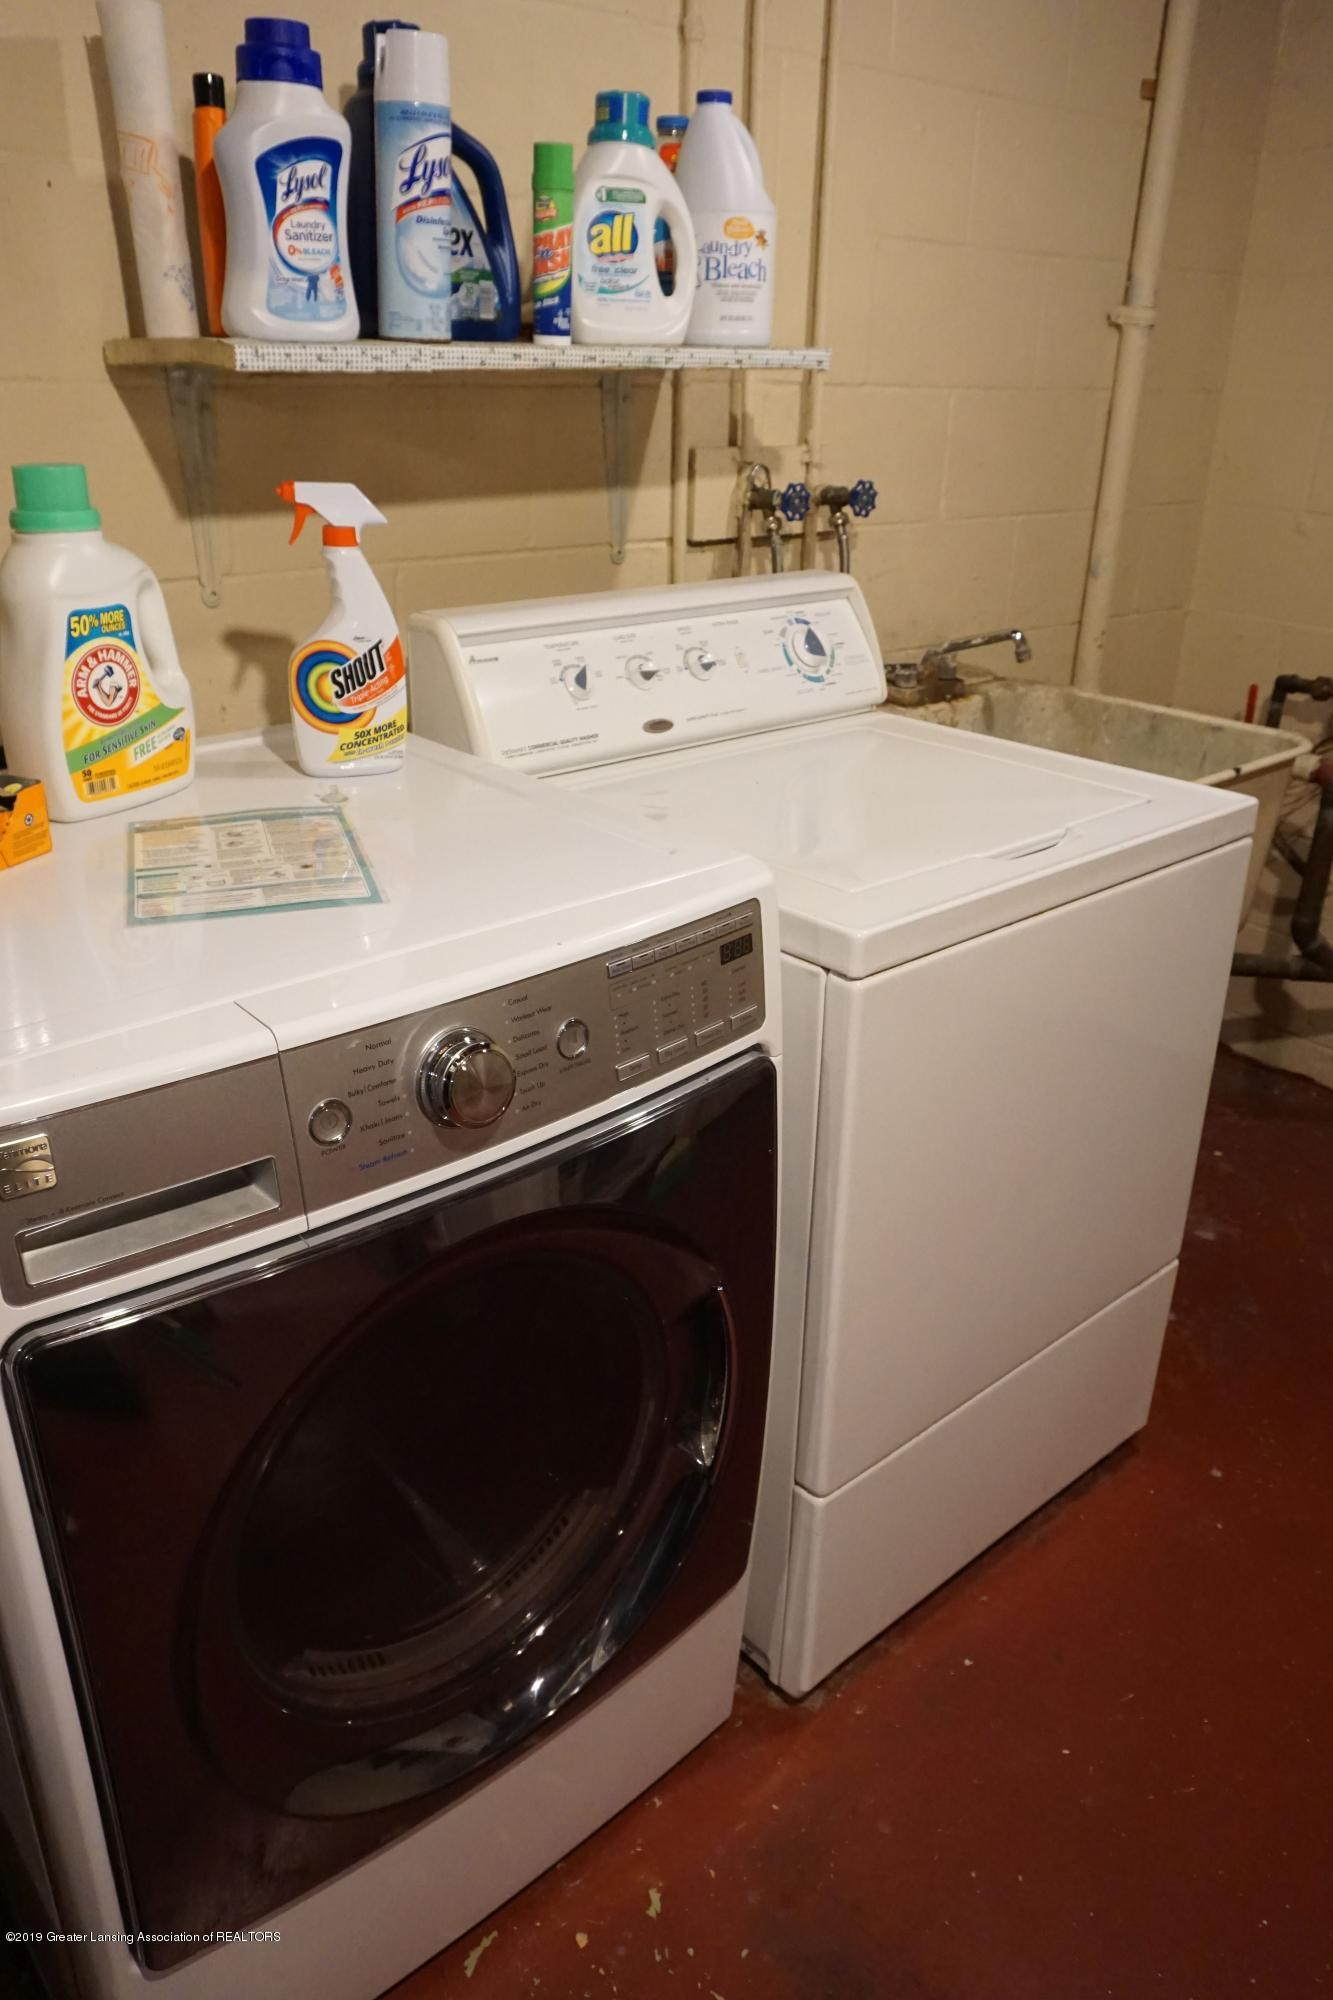 809 S Lansing St - Washer & Dryer Remain - 11